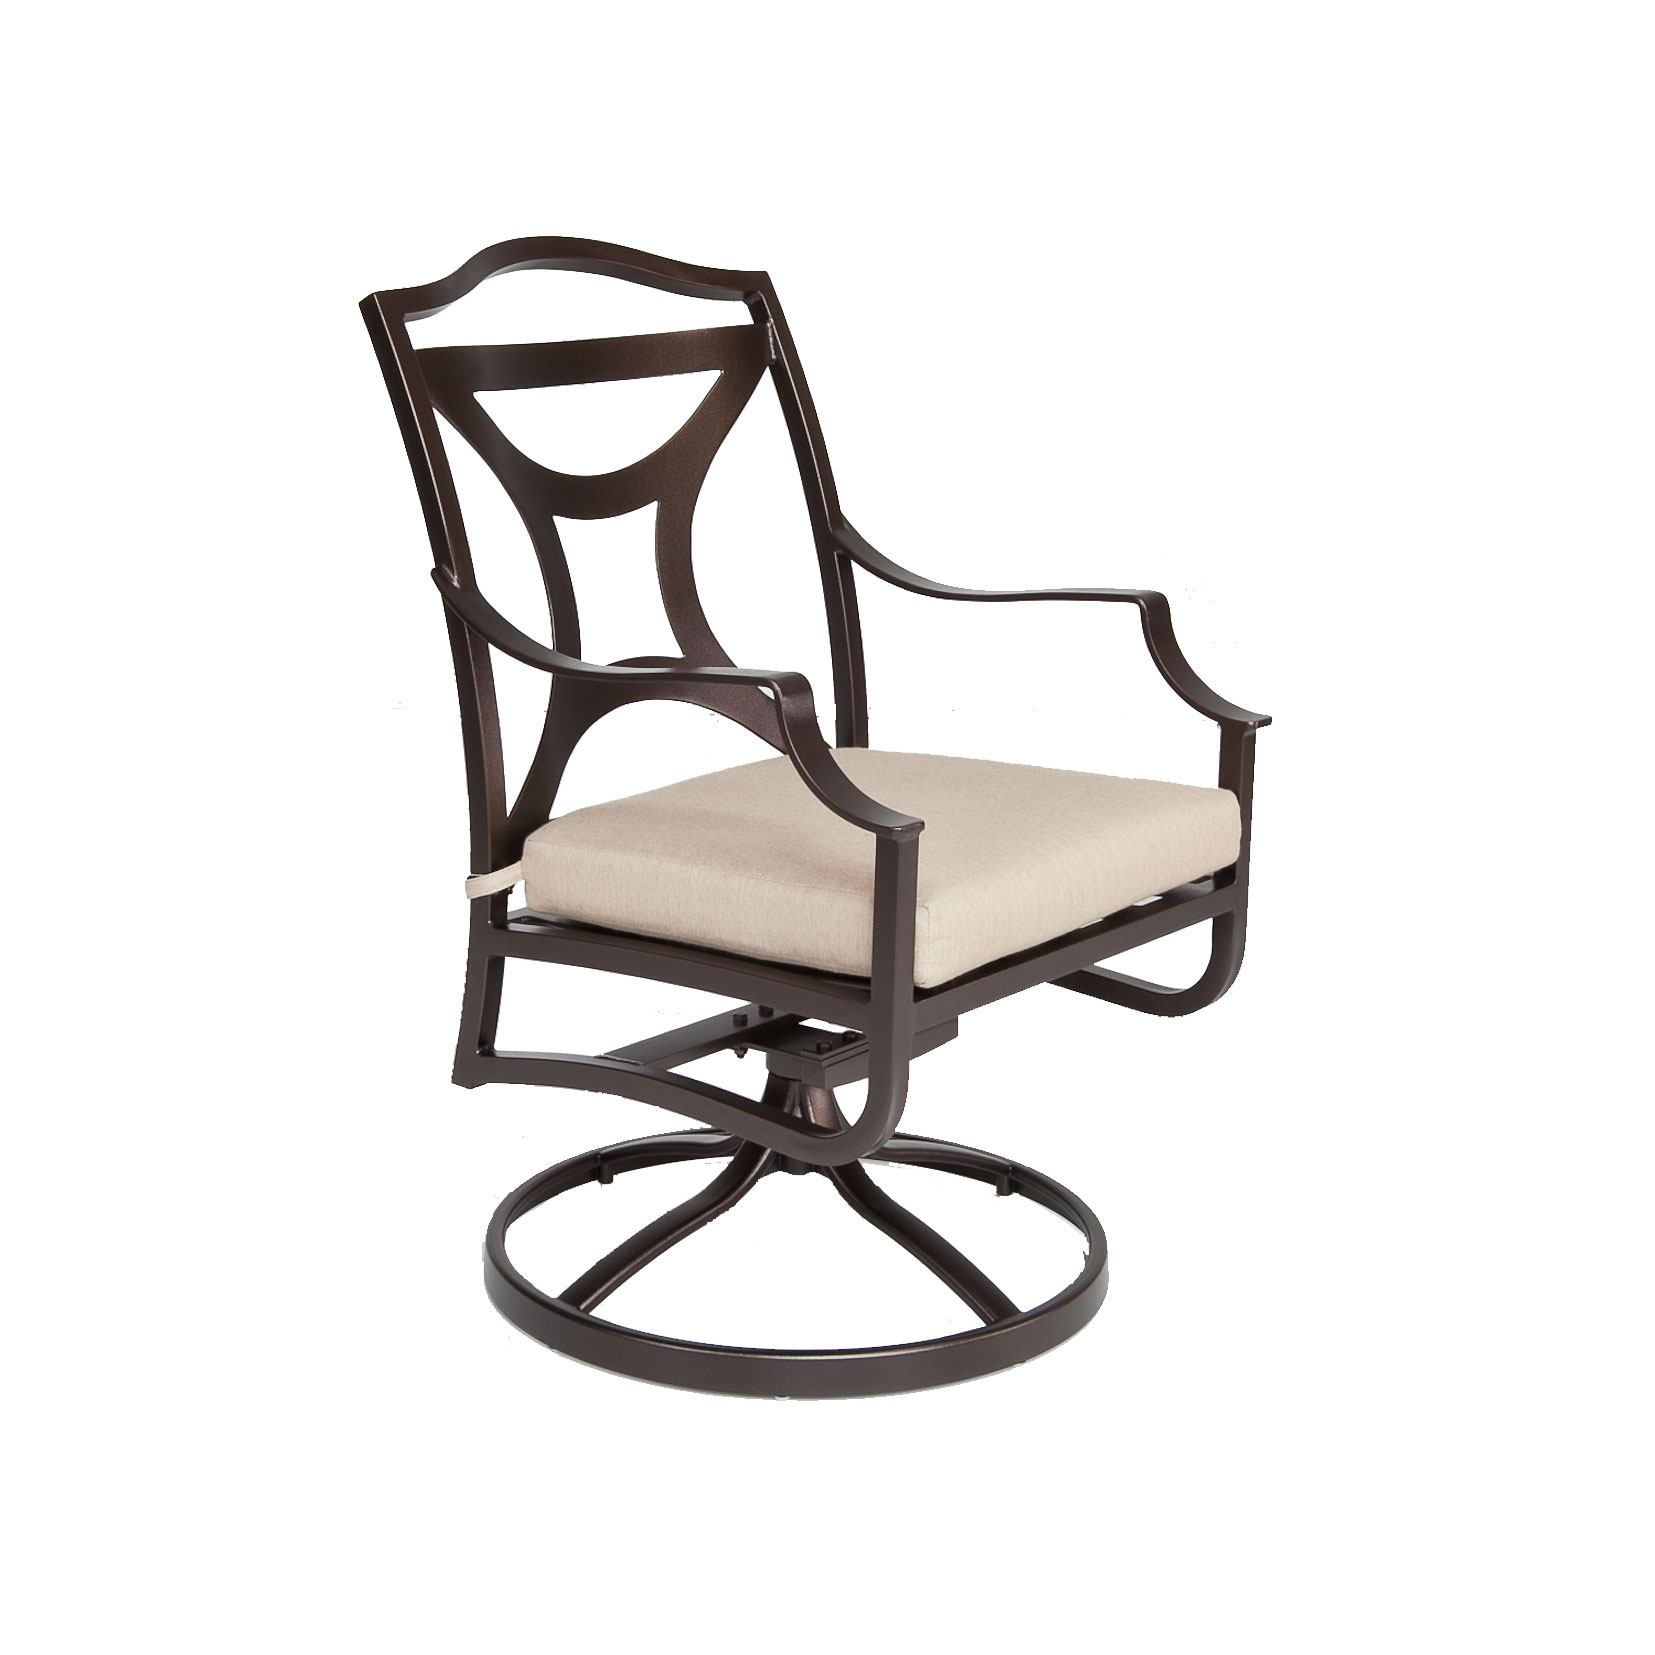 Ow Lee Madison Dining Swivel Rocker Leisure Living